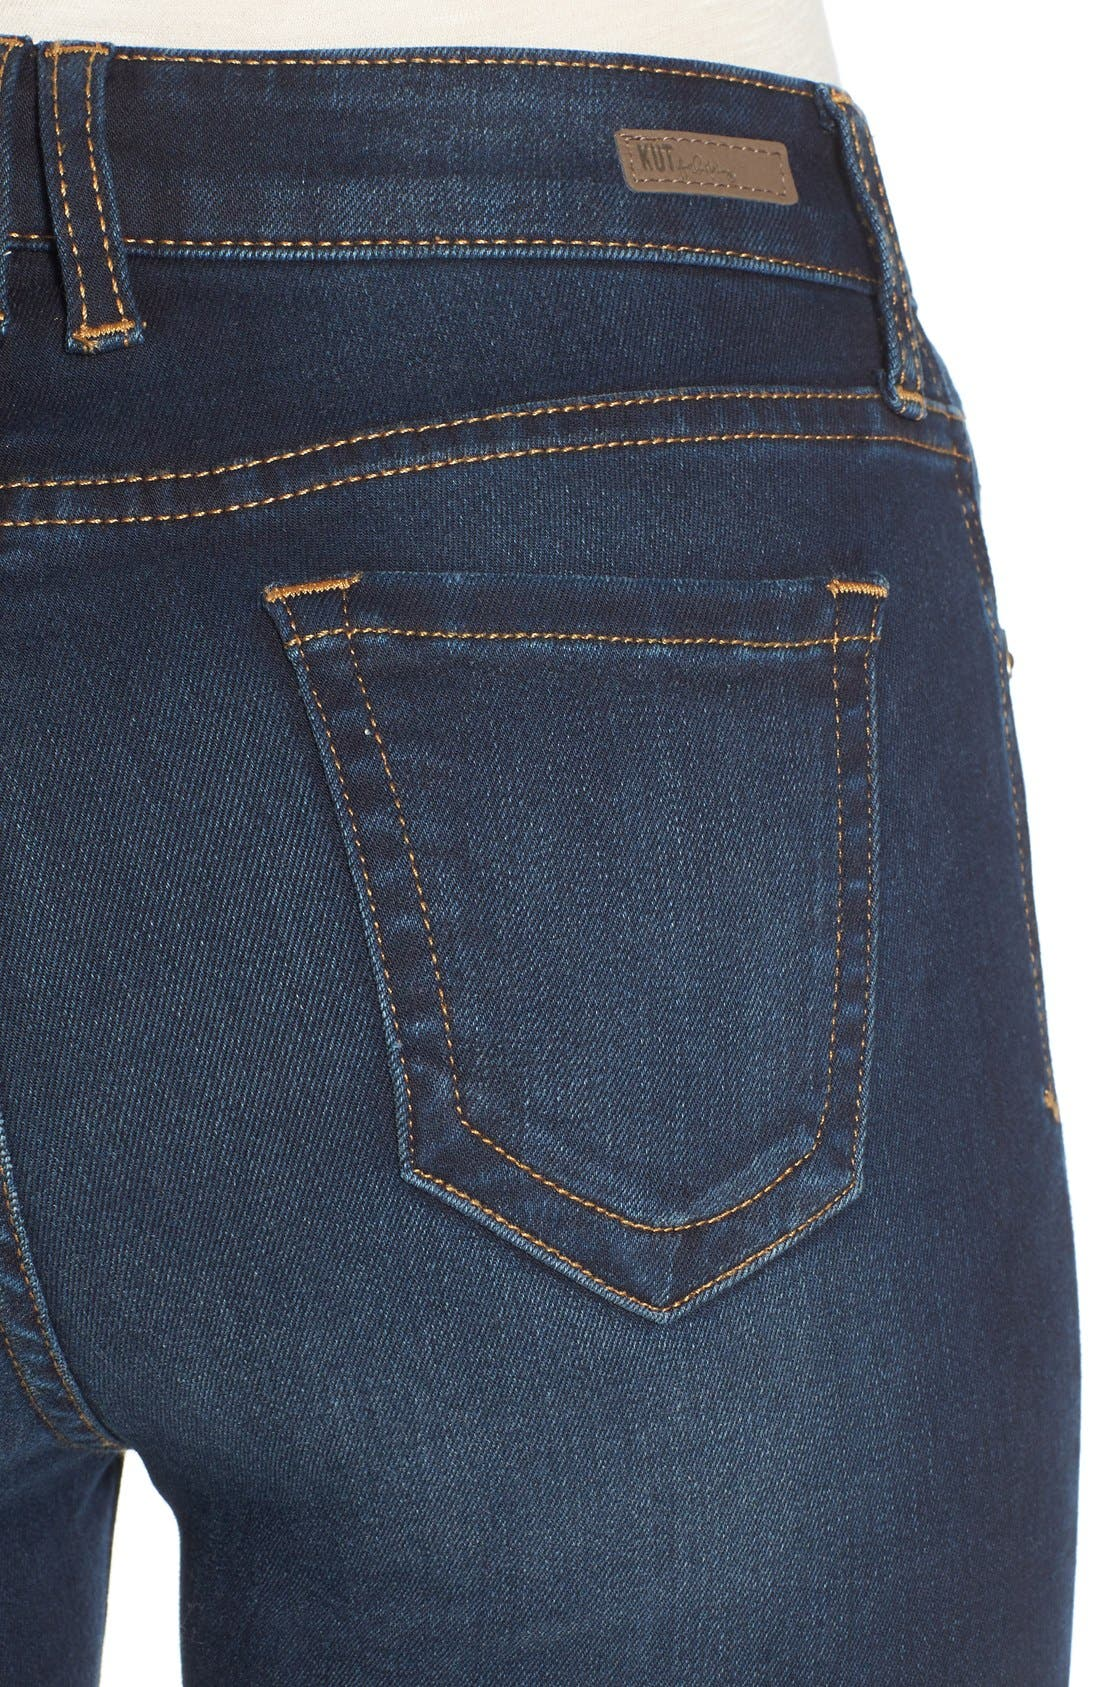 Alternate Image 4  - KUT from the Kloth 'Diana' Stretch Skinny Jeans (Brisk)